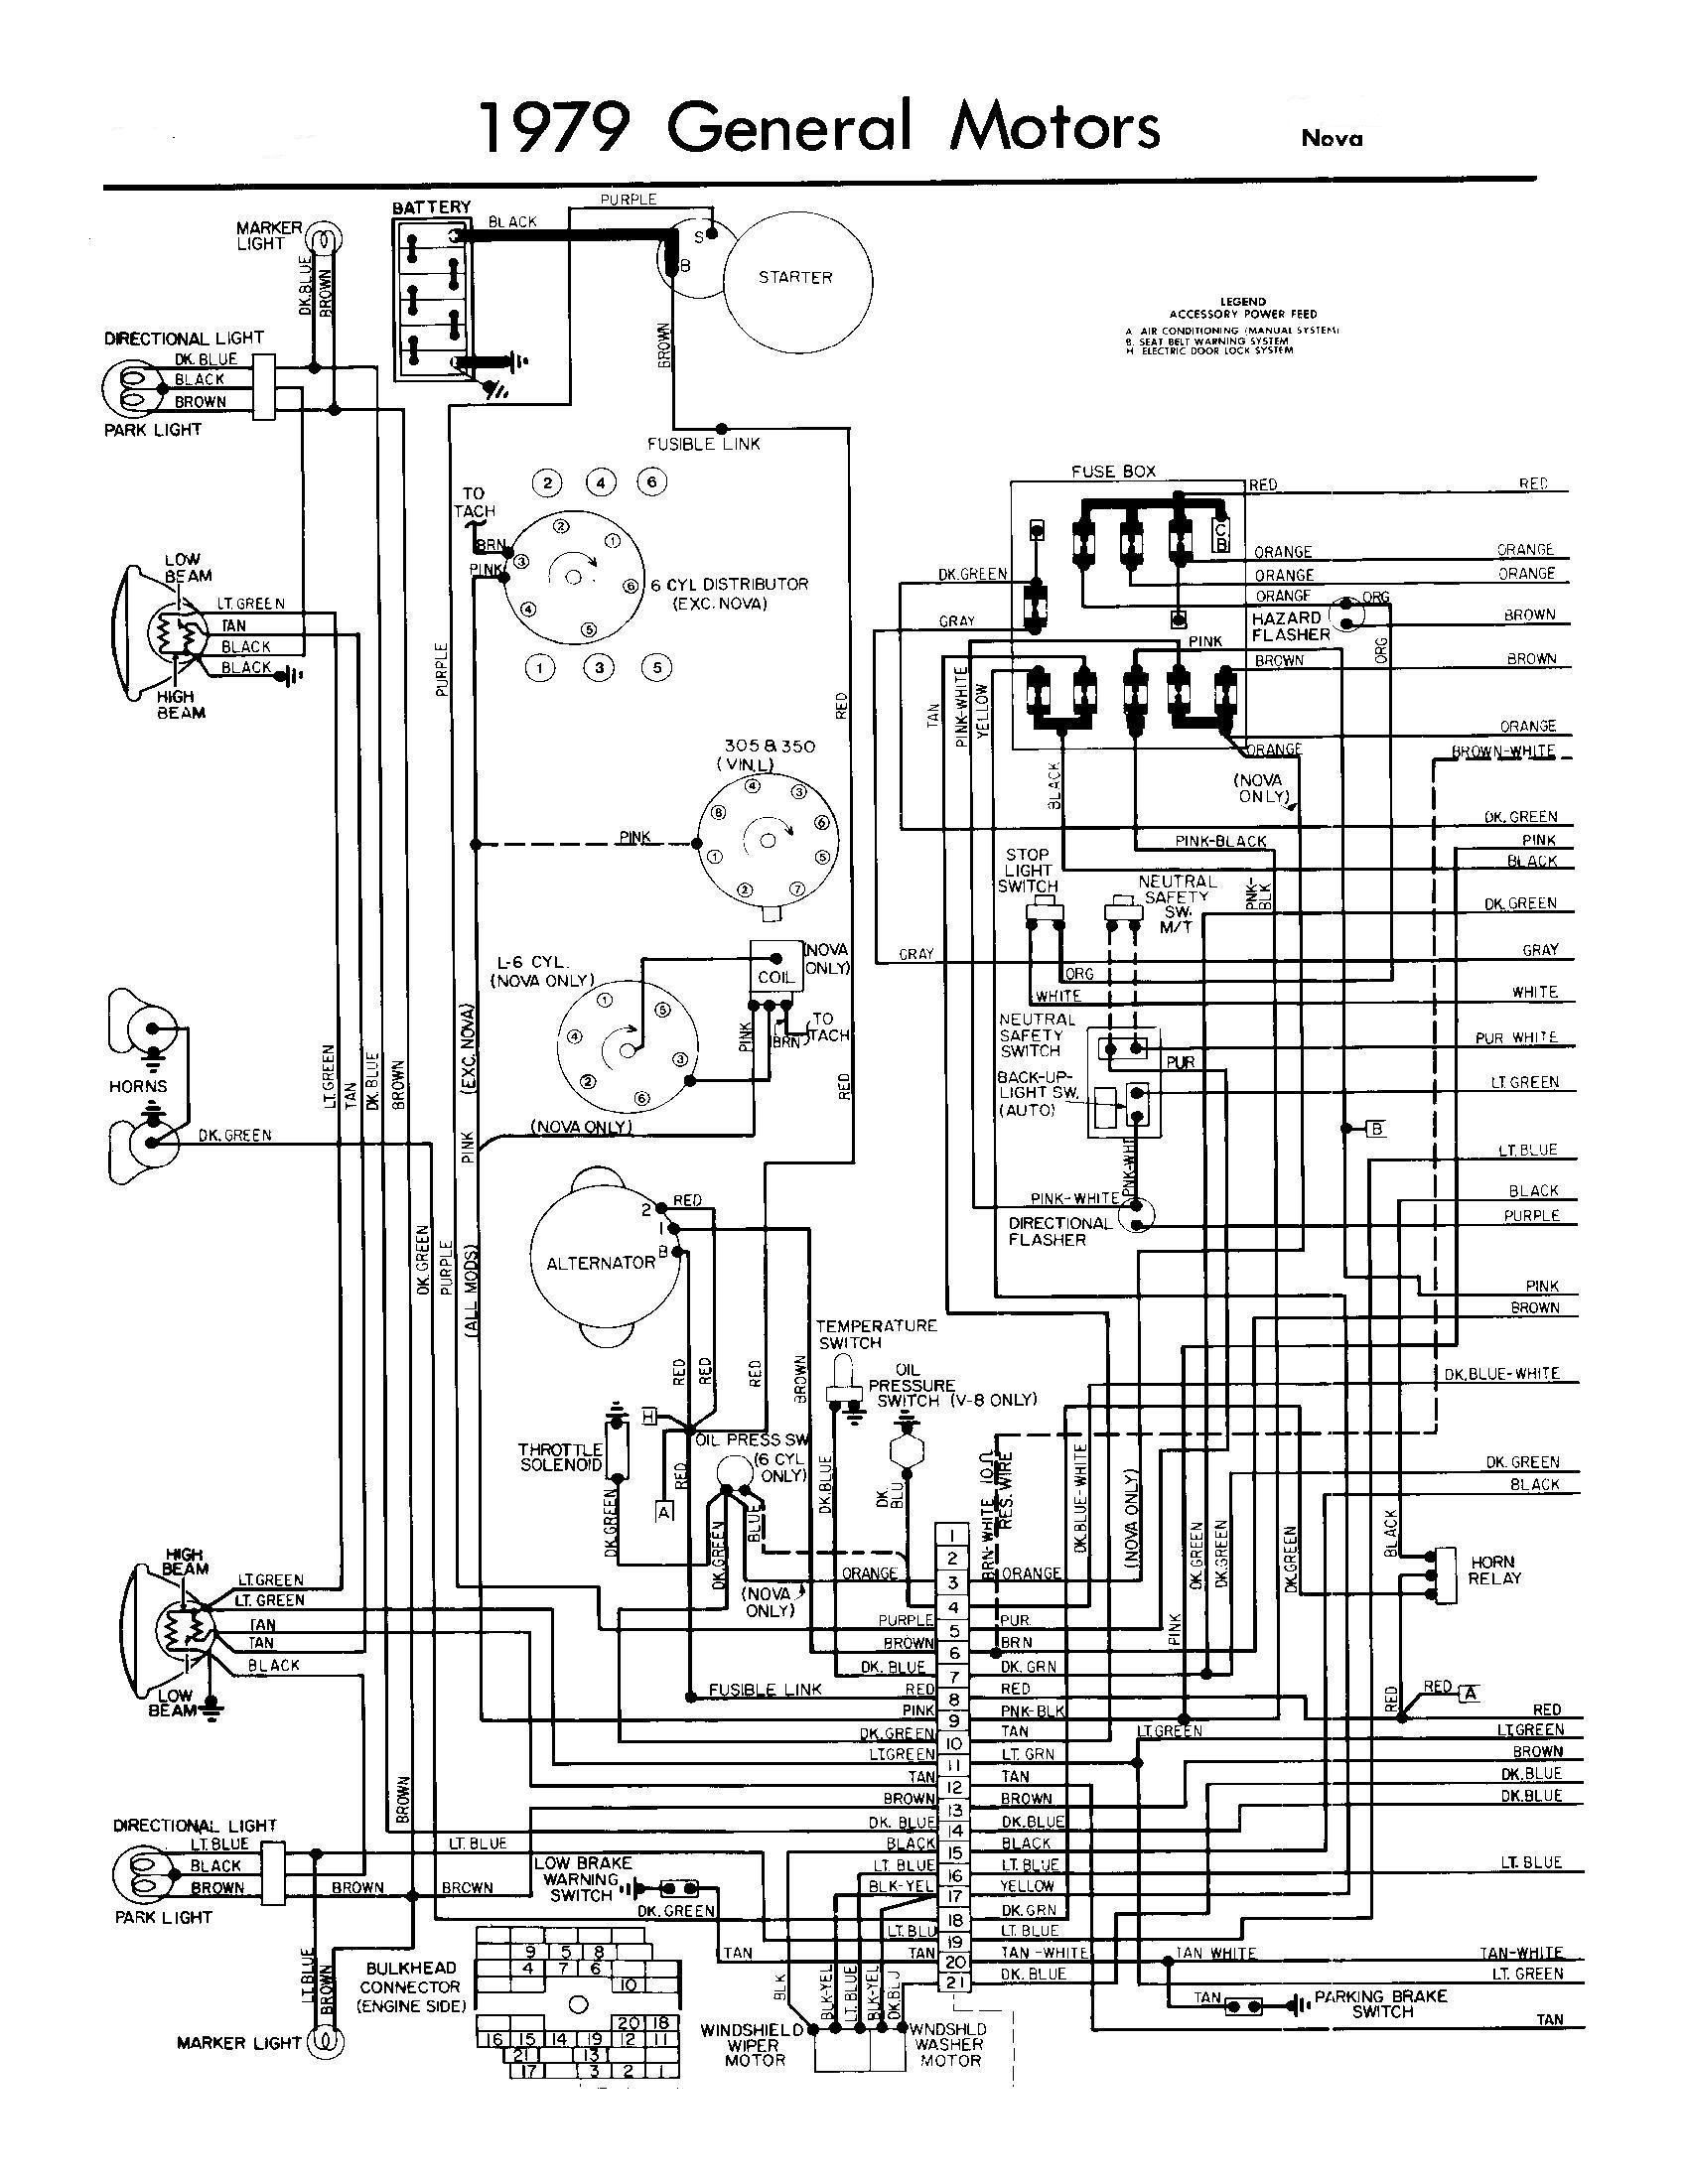 af30d80785d45bfeba8f1db47439920a 79 chevy truck wiring diagram 82 chevy truck wiring diagram 82 chevy truck wiring diagram at readyjetset.co